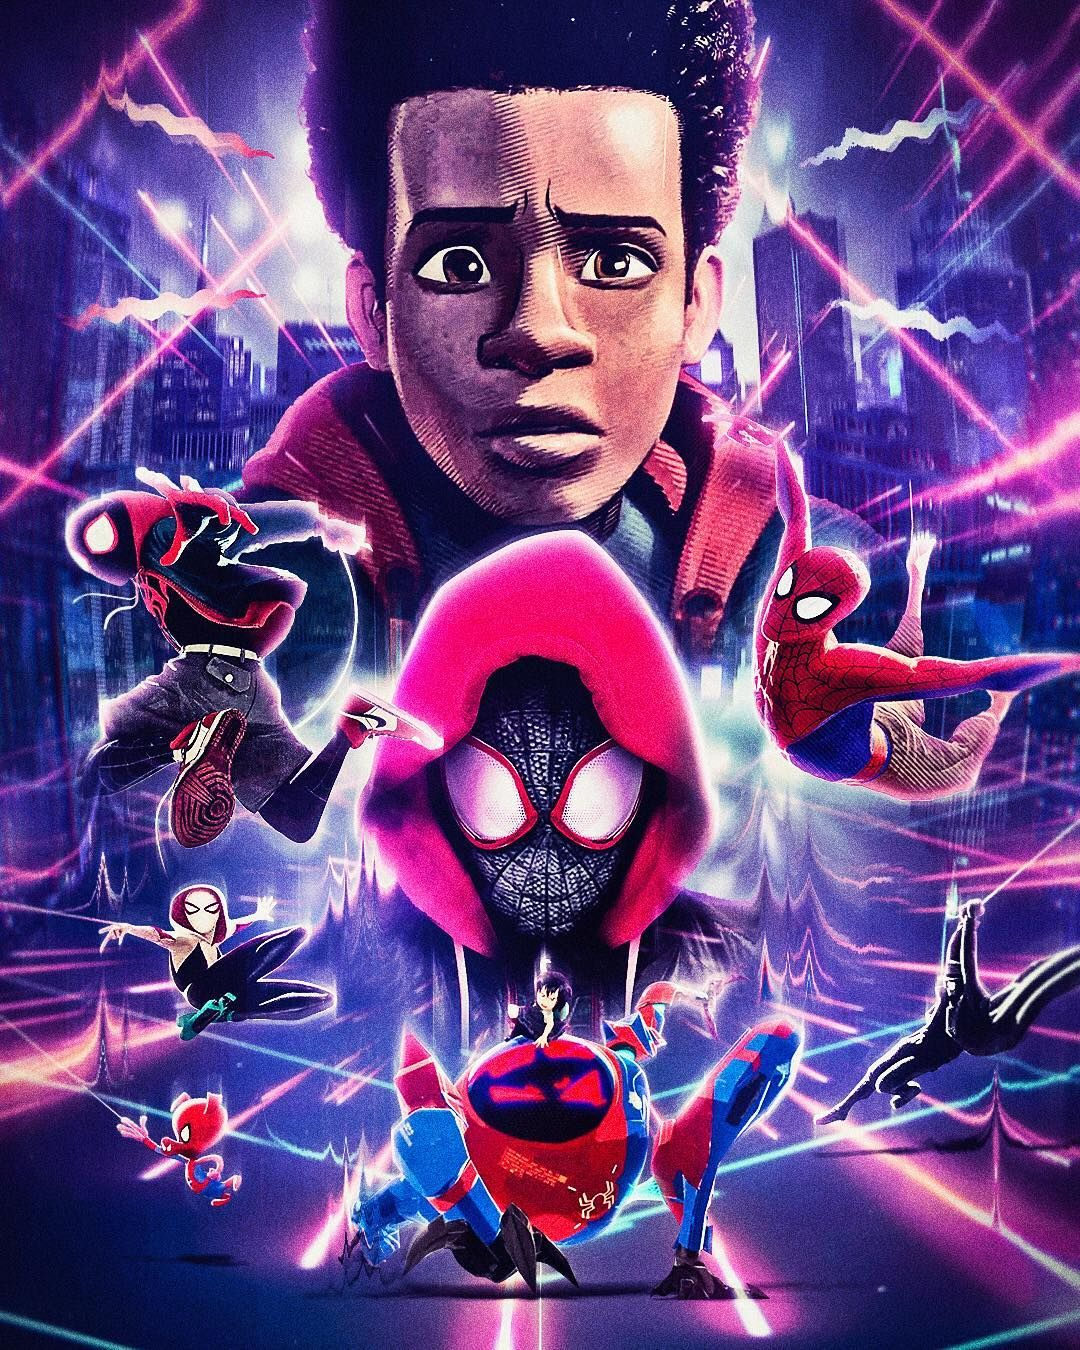 Freestylefriday Spider Man Into The Spider Verse By Masaolab Intothespiderverse Spiderman Spid Hombre Arana Comic Ultimo Hombre Arana Superheroes Marvel